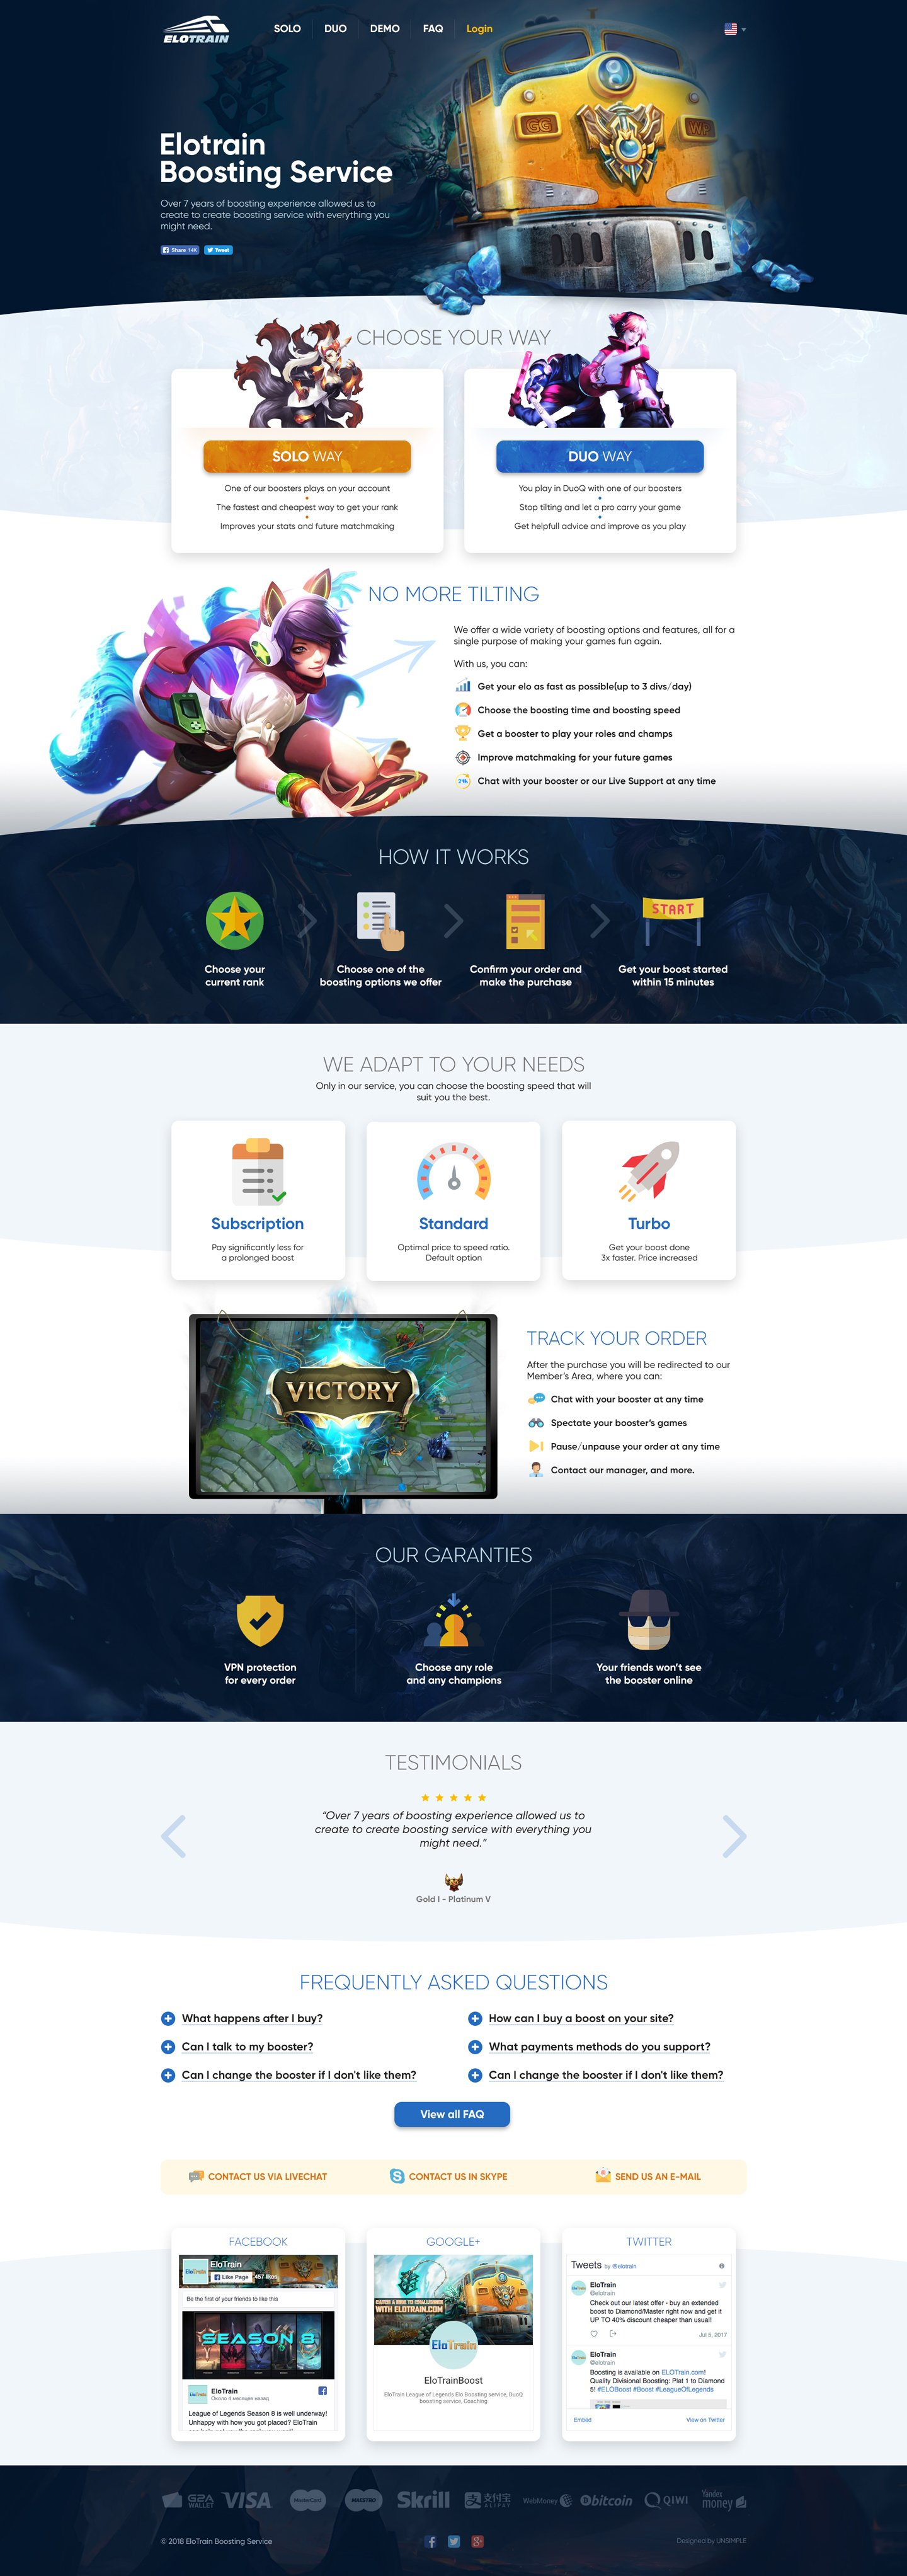 Elotrain > Website design for League of Legends boosting service. Main page